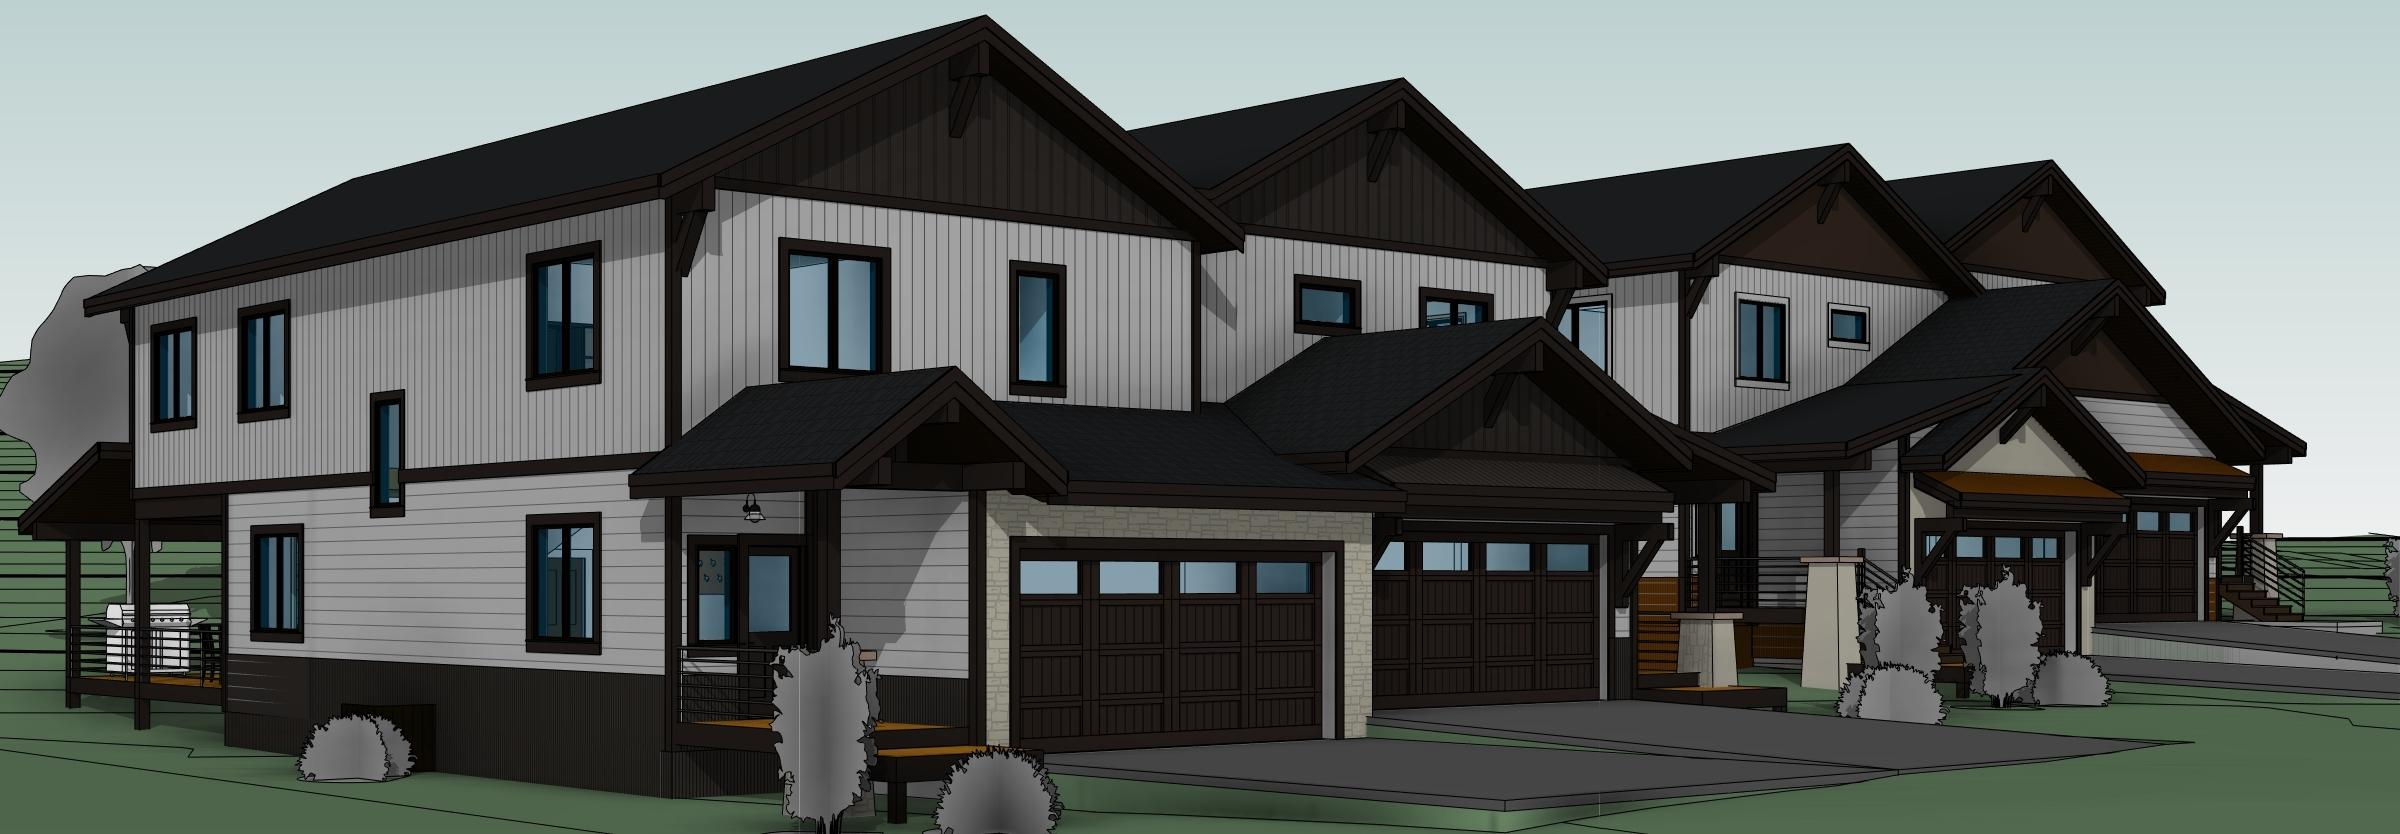 Dakota Trail Townhomes